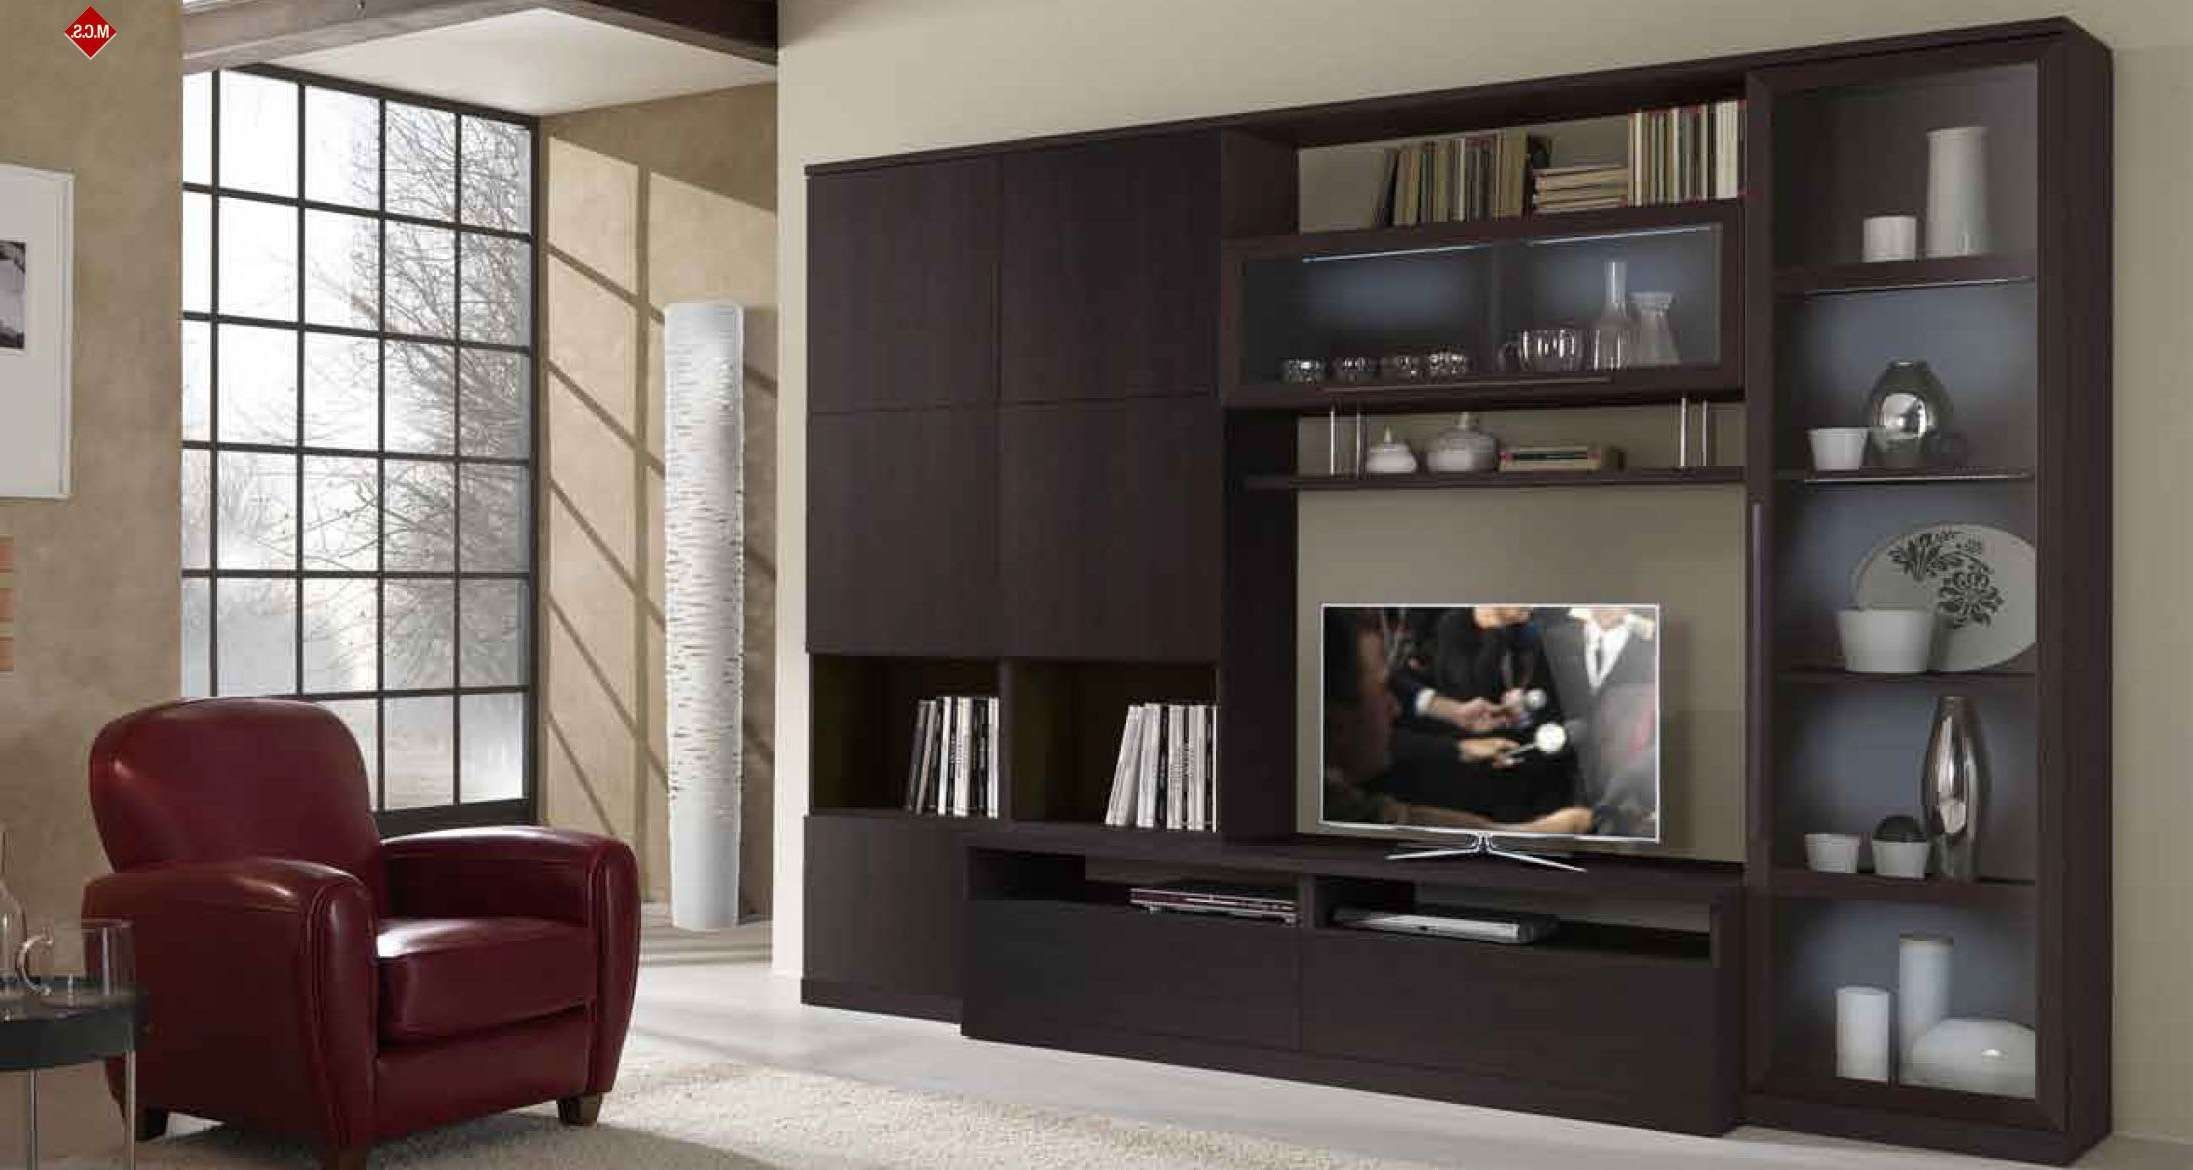 20 Modern Tv Unit Design Ideas For Bedroom & Living Room With Pictures In Modern Tv Cabinets Designs (View 19 of 20)